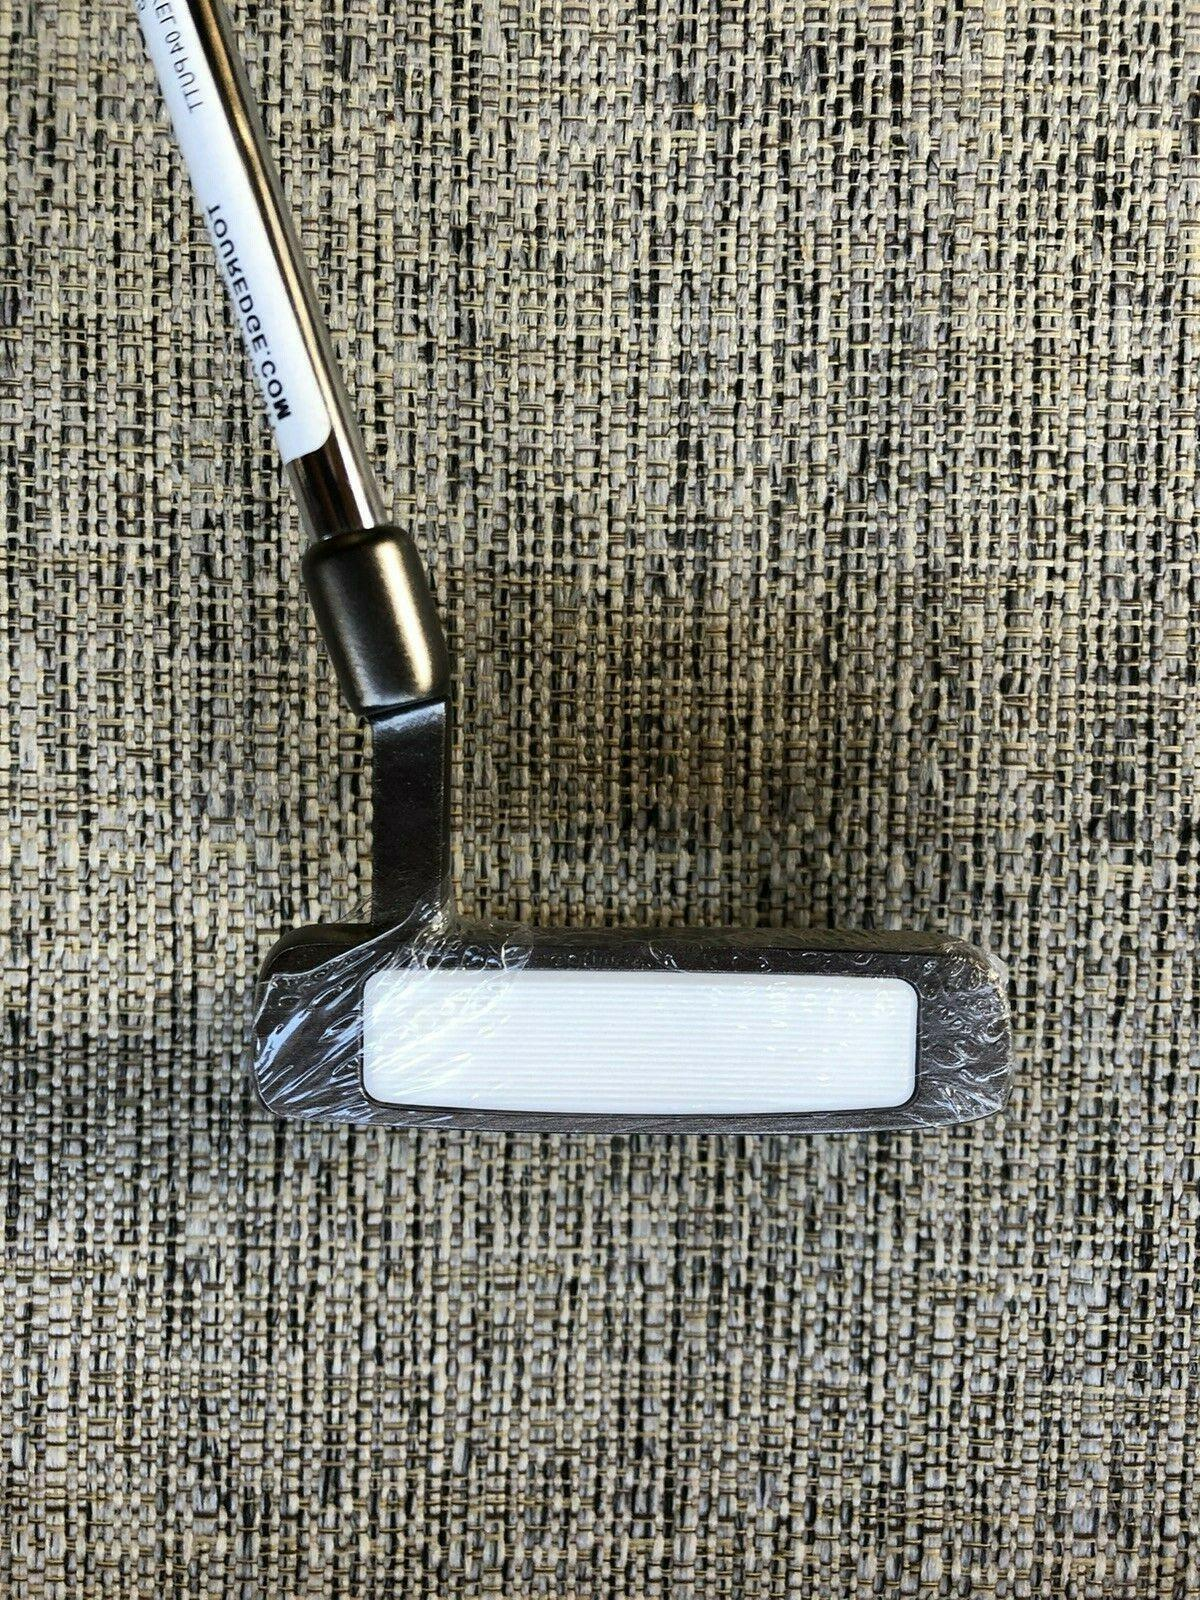 BRAND NEW! Tour Edge HP Nickel 04 Putter Right Hand